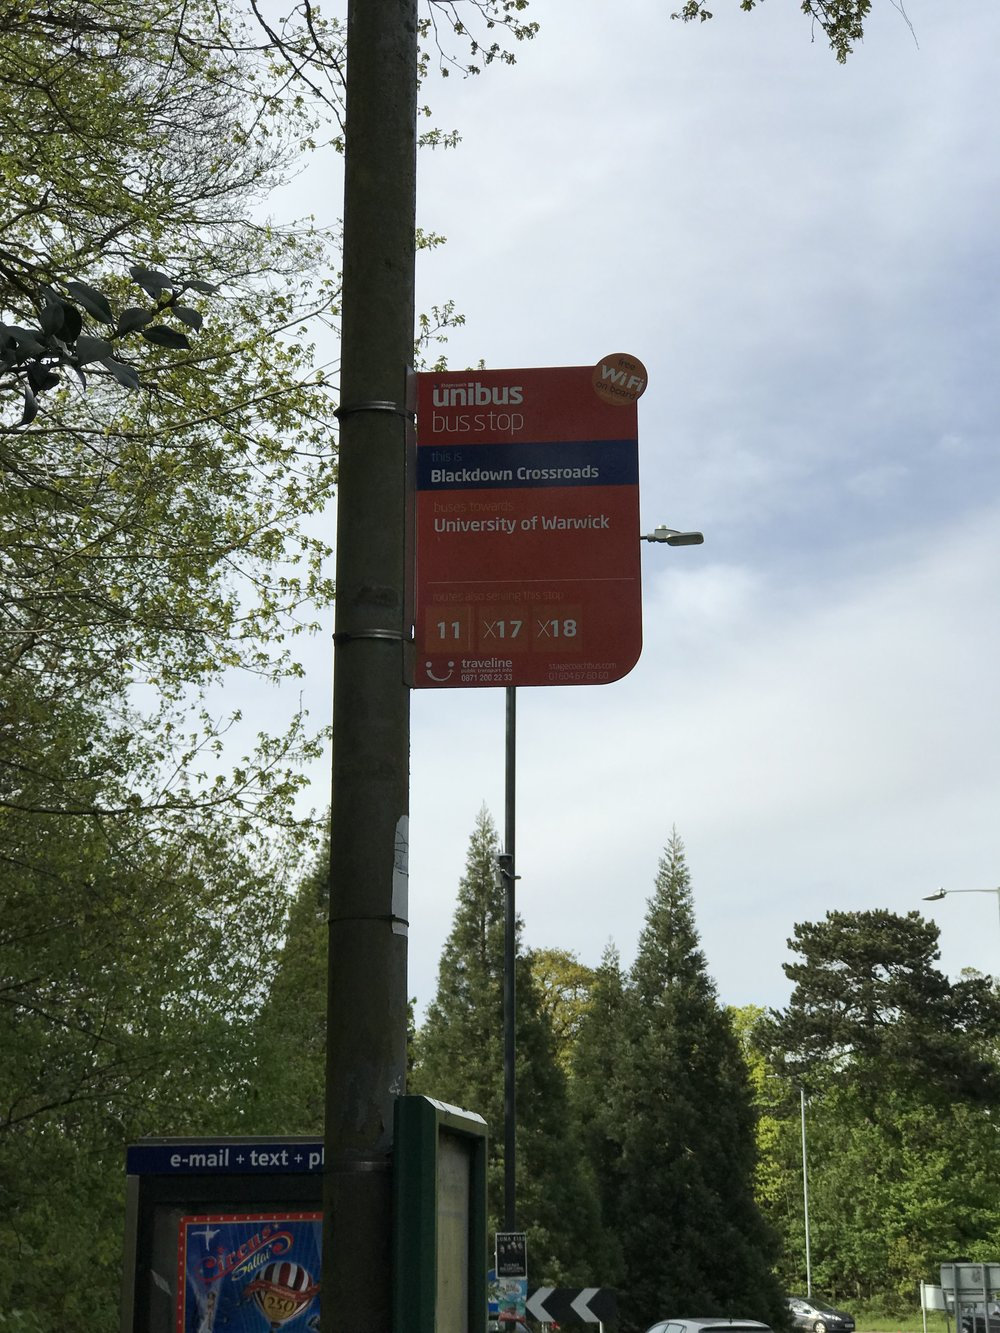 Get off at this bus stop